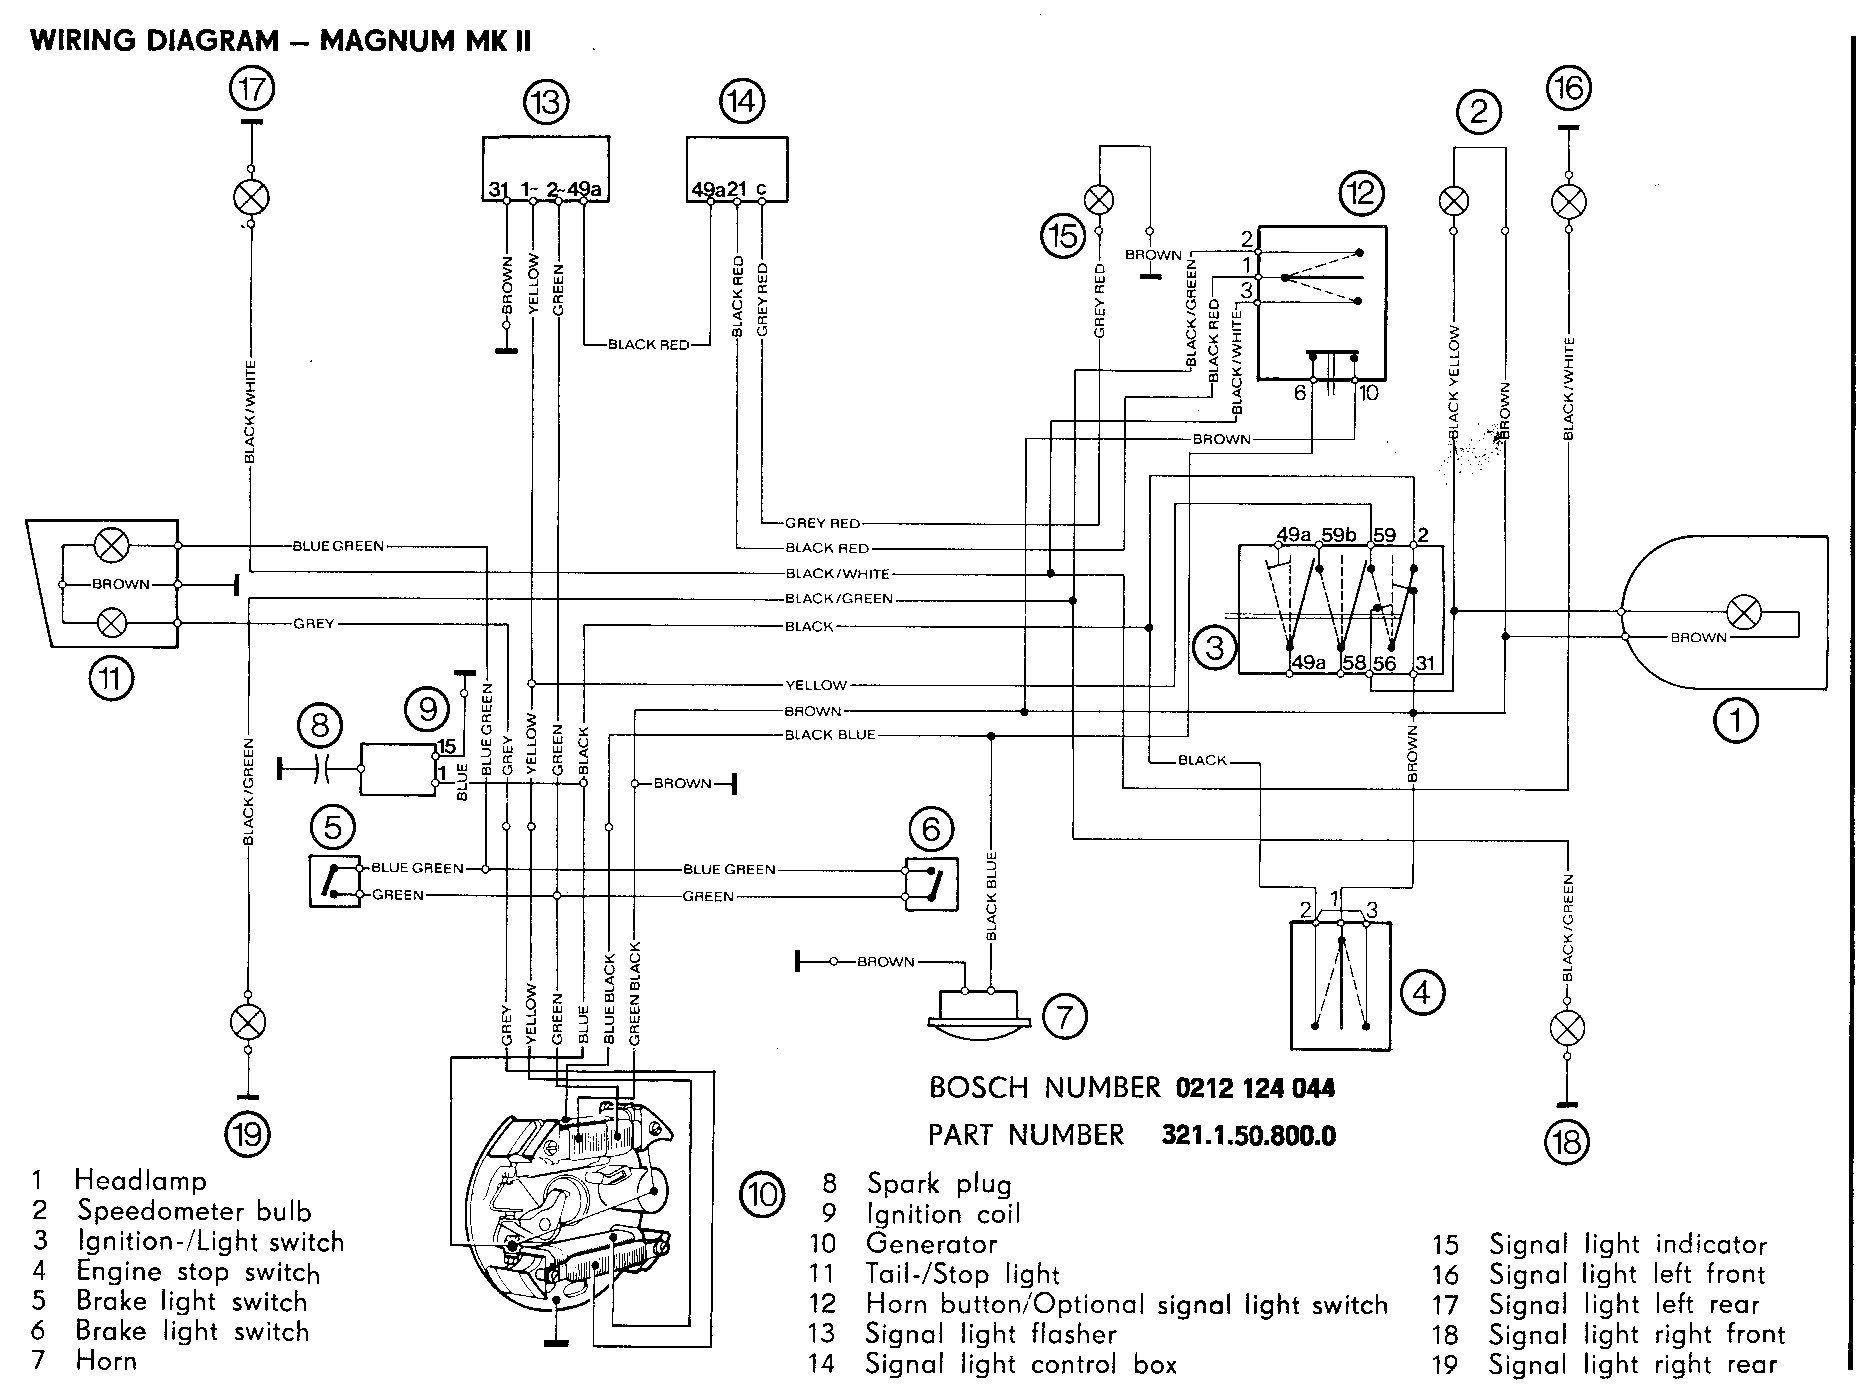 06 Dodge Dakota Tail Light Wiring Diagram. Dodge. Auto